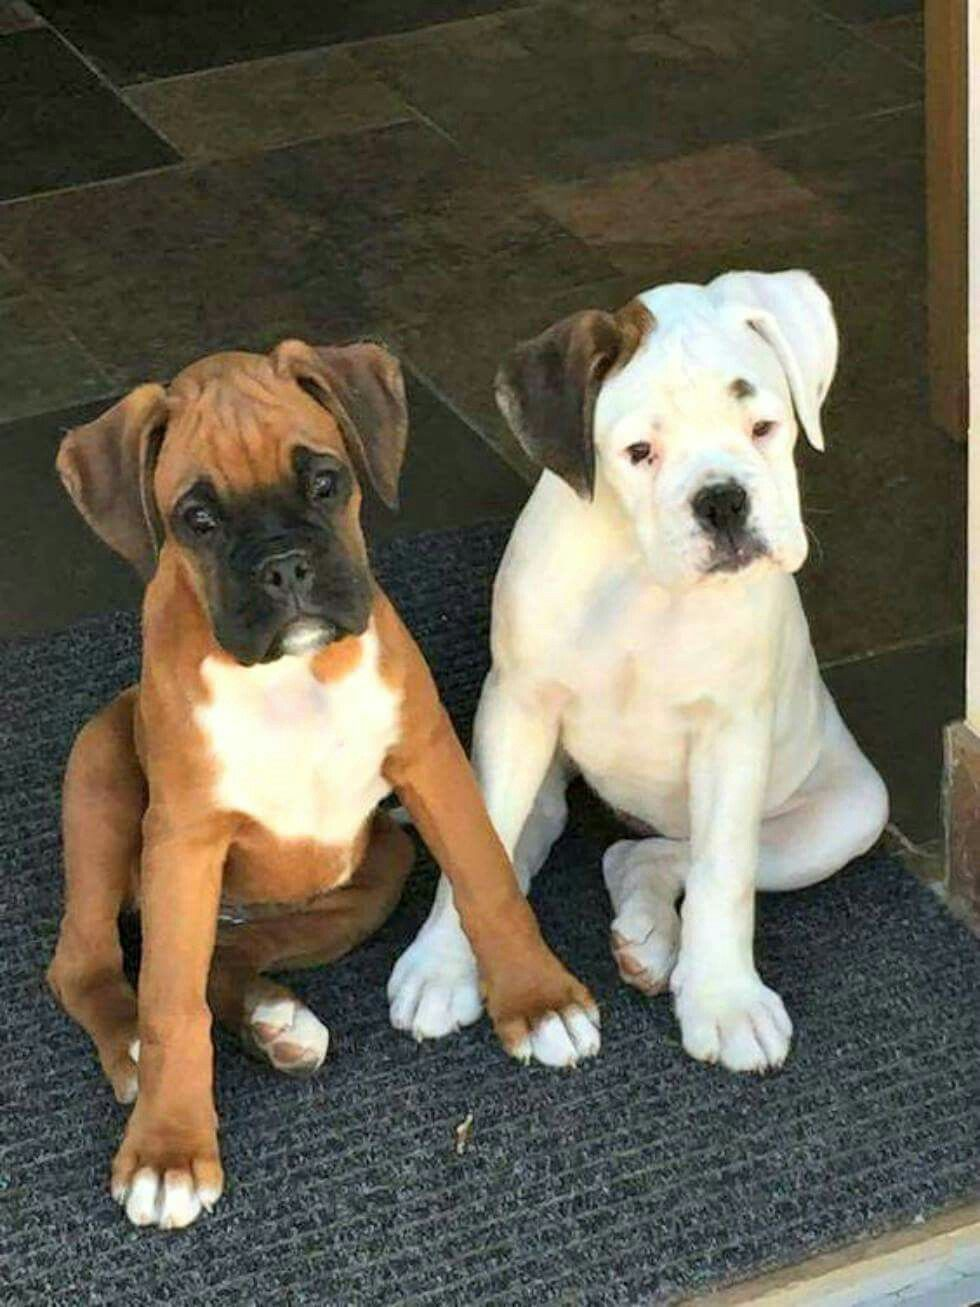 Boxers I Wish These Two Lived With Me Dunway Enterprises Training Click Here Http Dunway Us Kindle Html Boxer Html Boxer Dogs Boxer Puppies Puppies